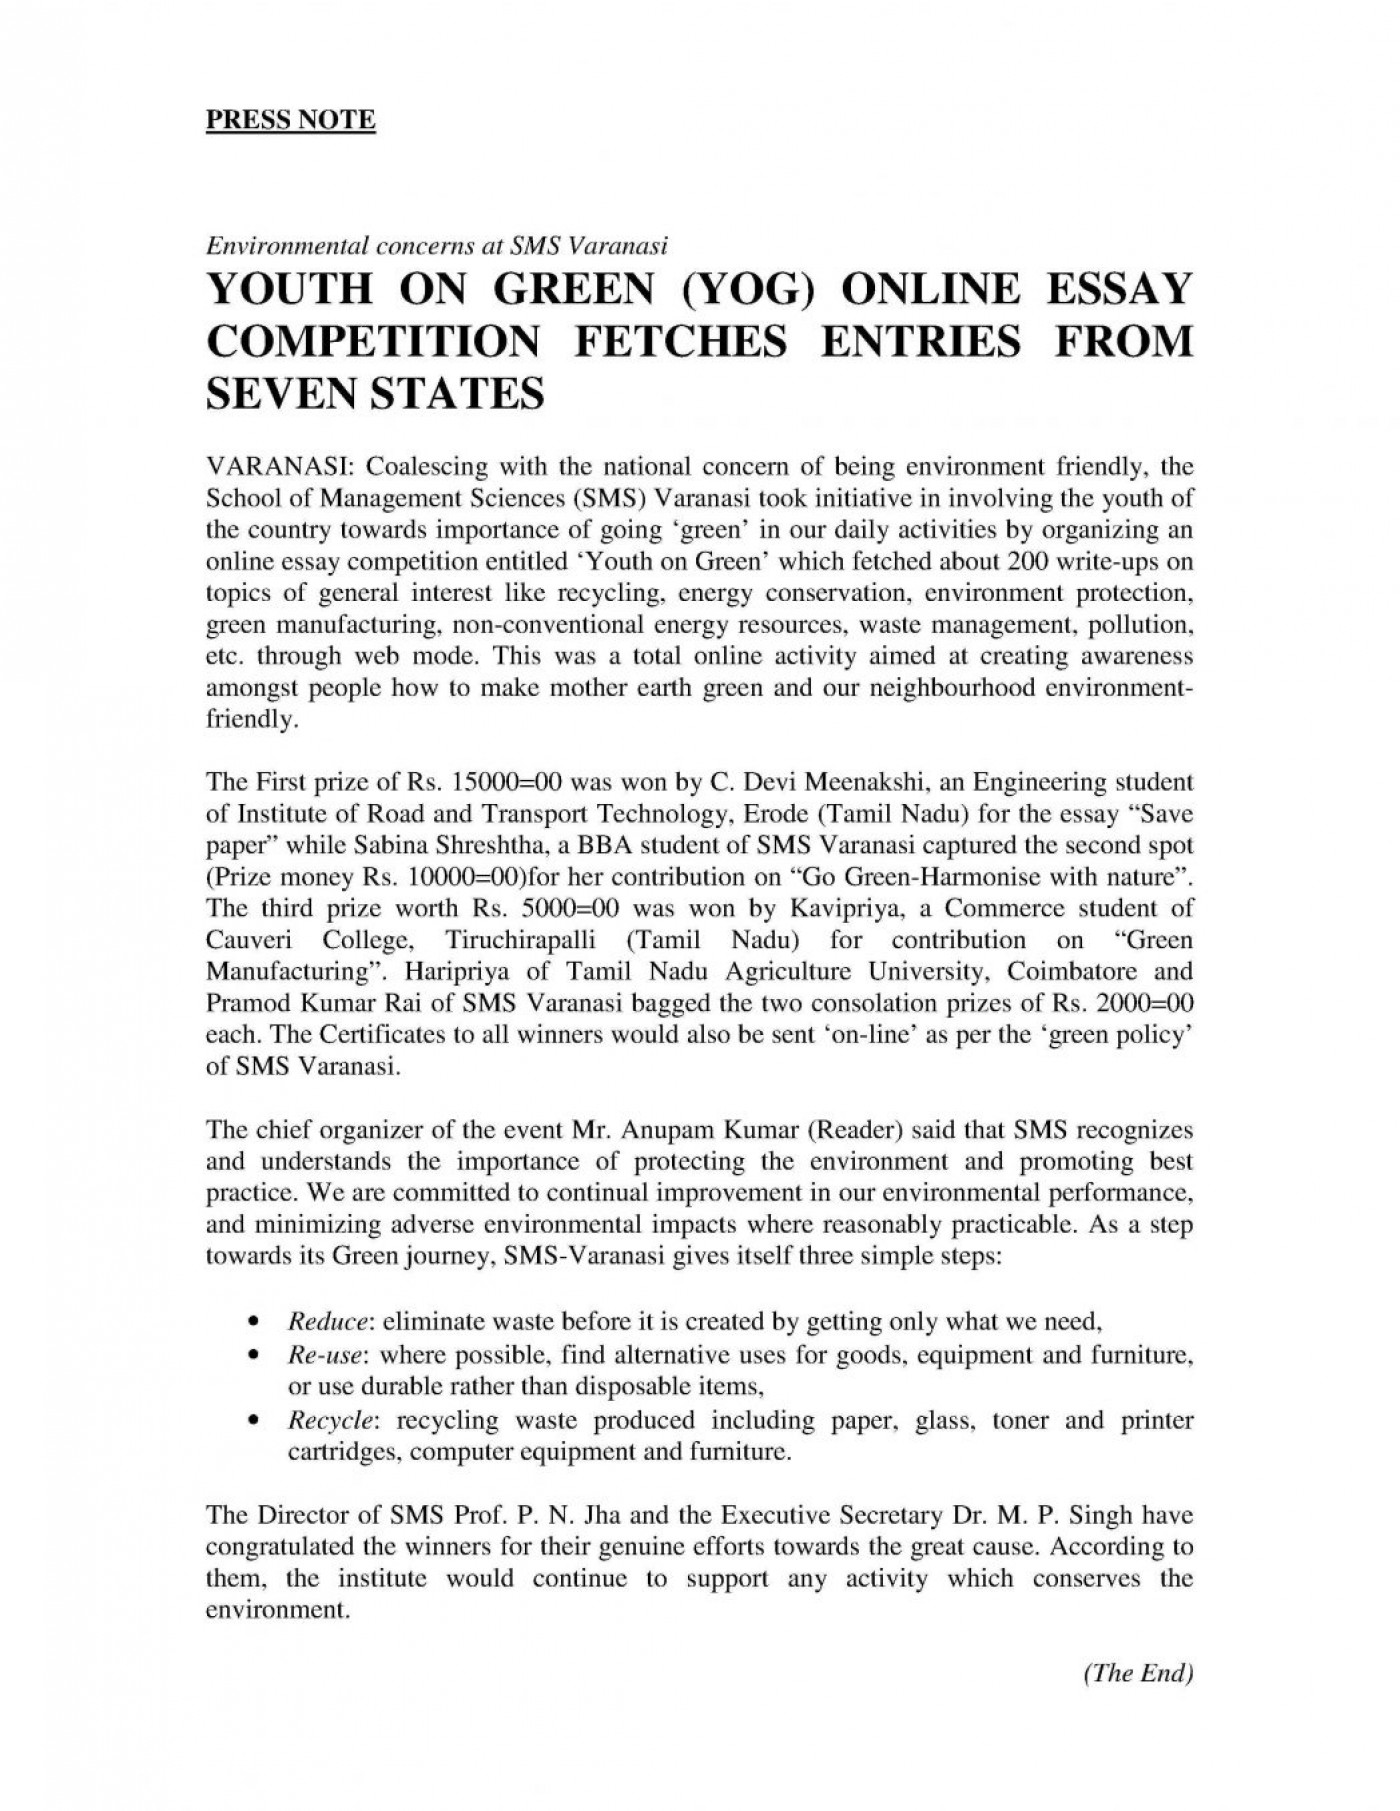 020 Best Essays For College Essay On Good Habits How Tot Application Online Yog Press Re About Yourself Examples Your Background Failure Prompt Off Hook 1048x1356 Example Amazing To Start An With A Do U Book Autobiography 1400